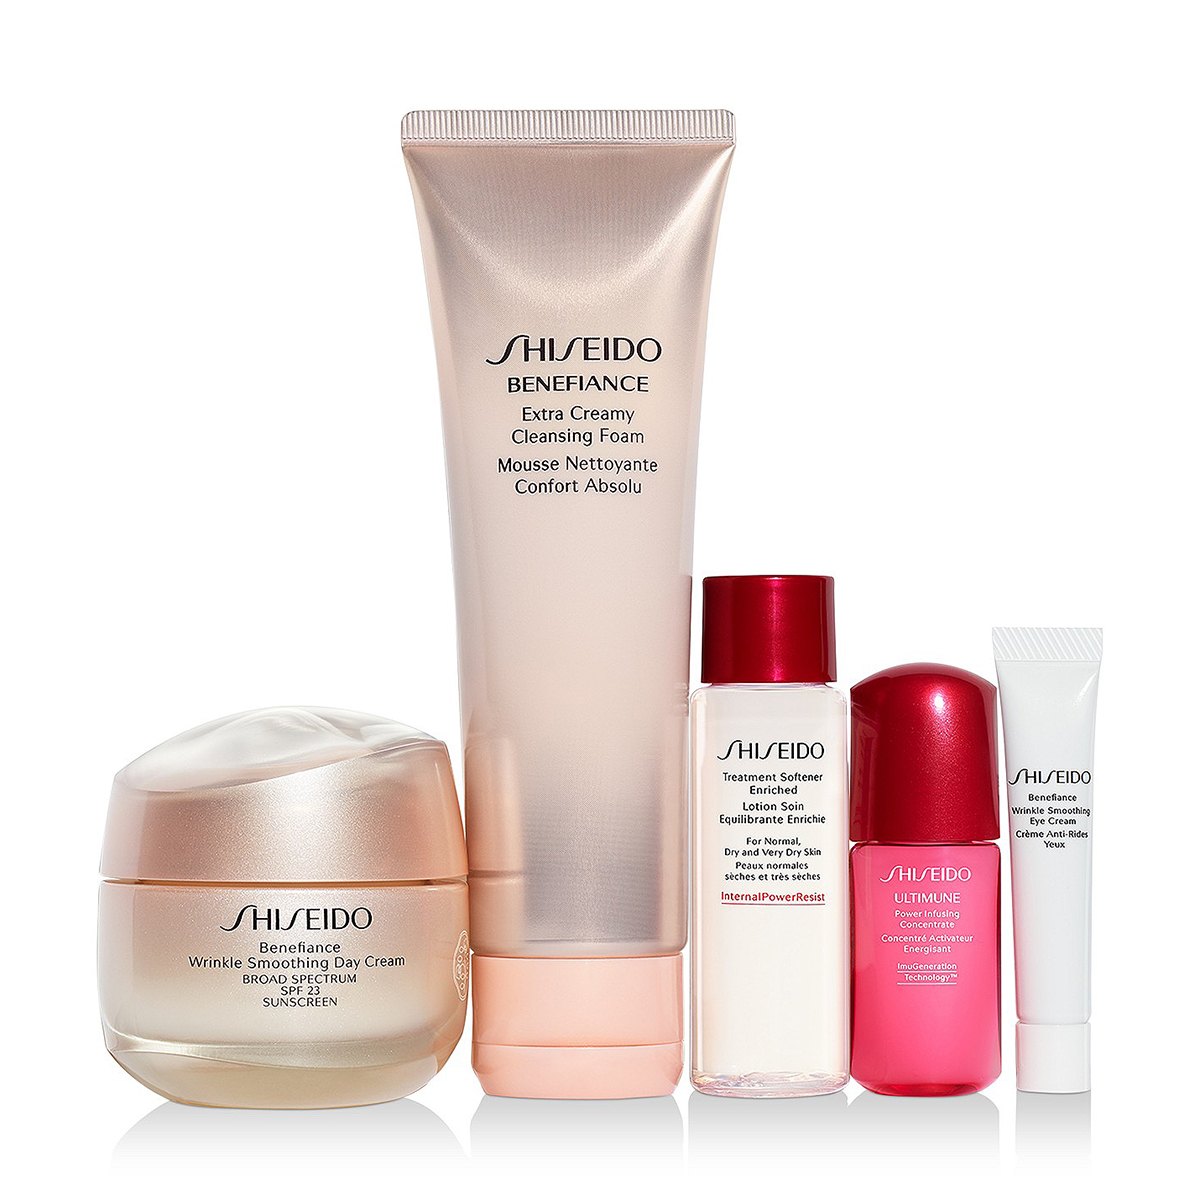 Keep One, Gift One: This Shiseido Skincare Set Is a Holiday Must-Have